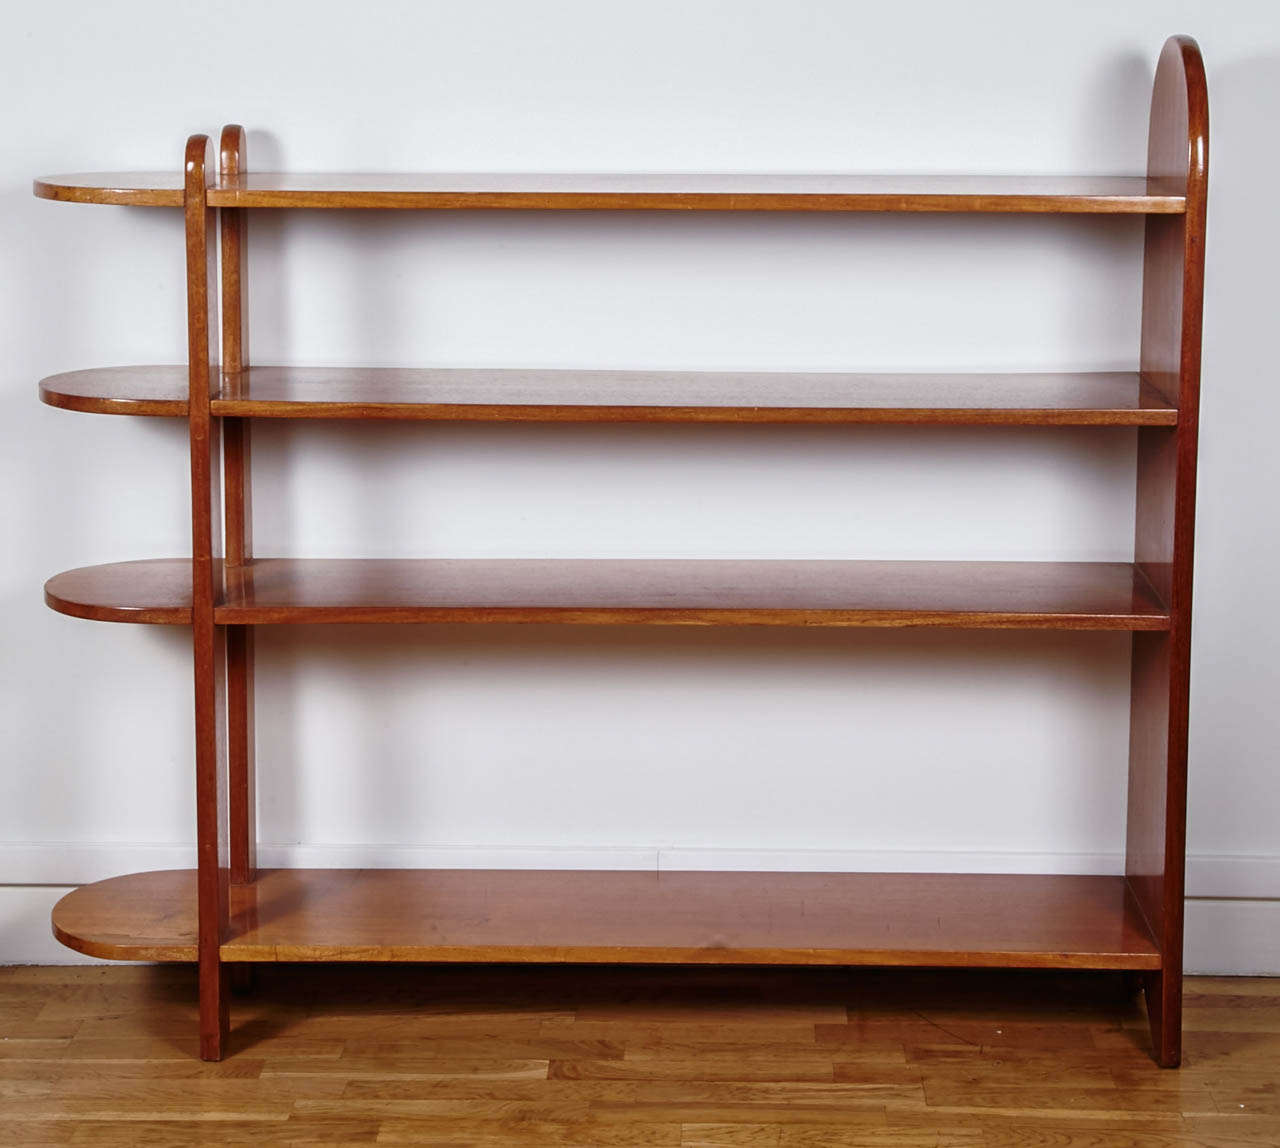 French Art Deco Mahogany Shelf or Bookcase by Eugène Printz, 1932 For Sale